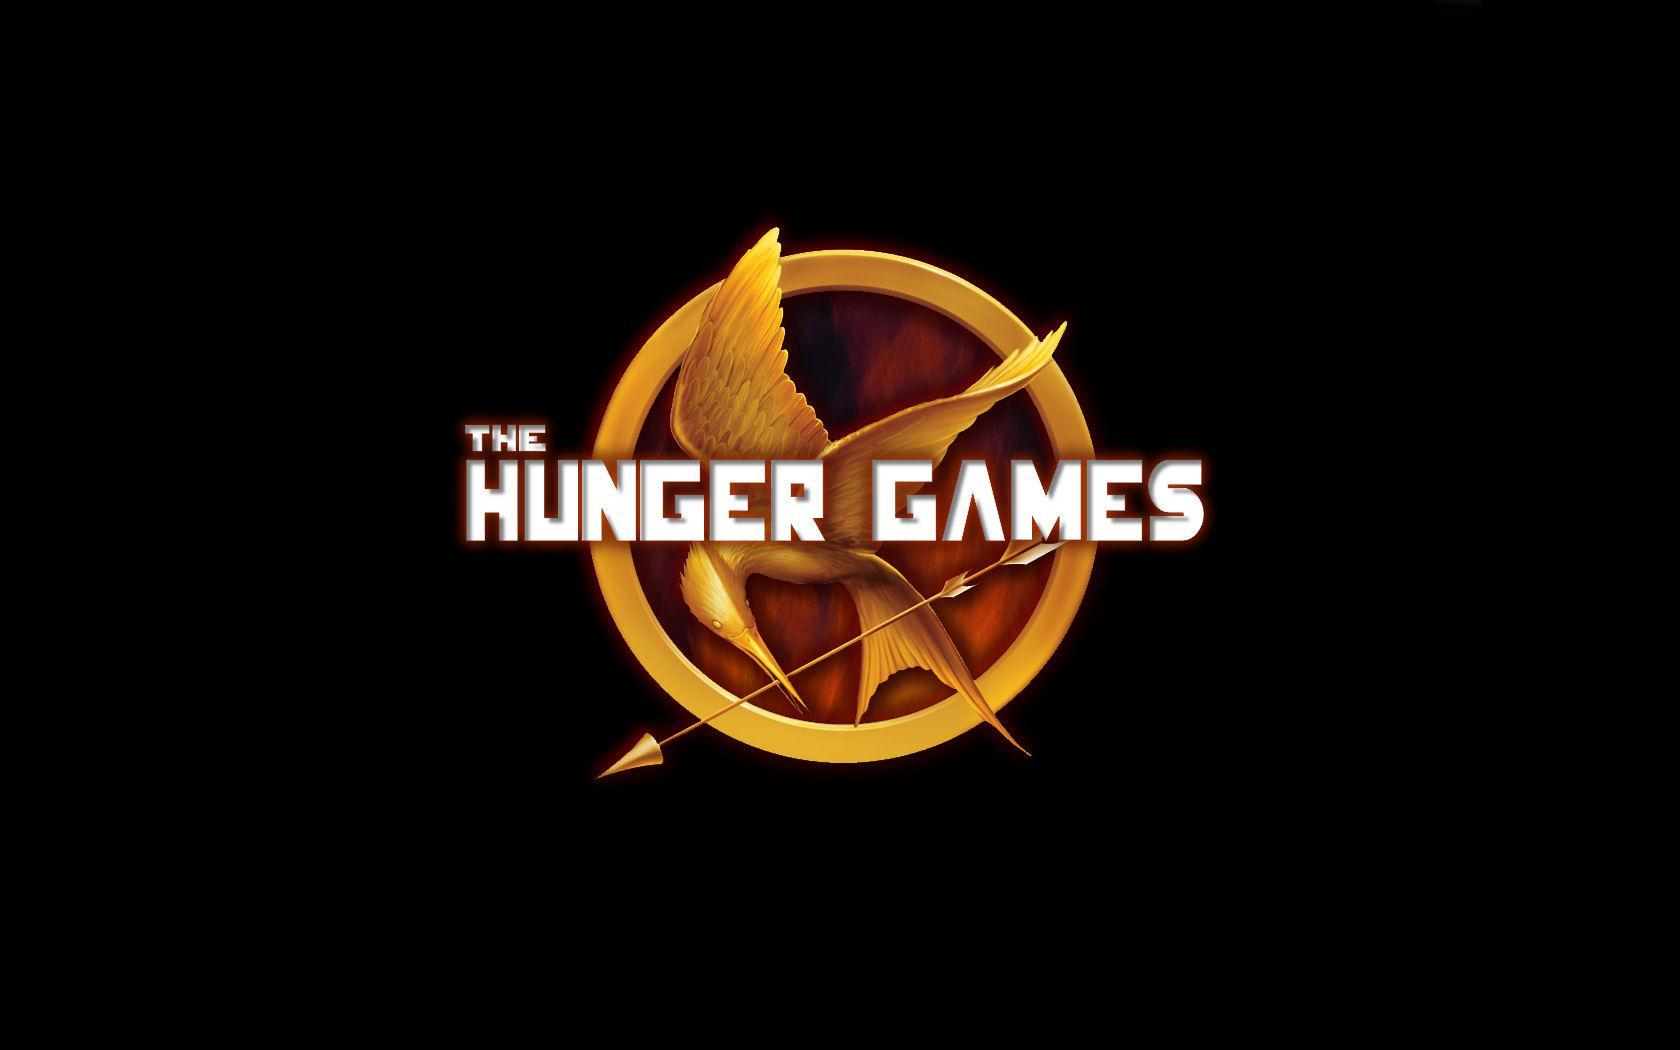 which girl hunger games character do you look like (girls)